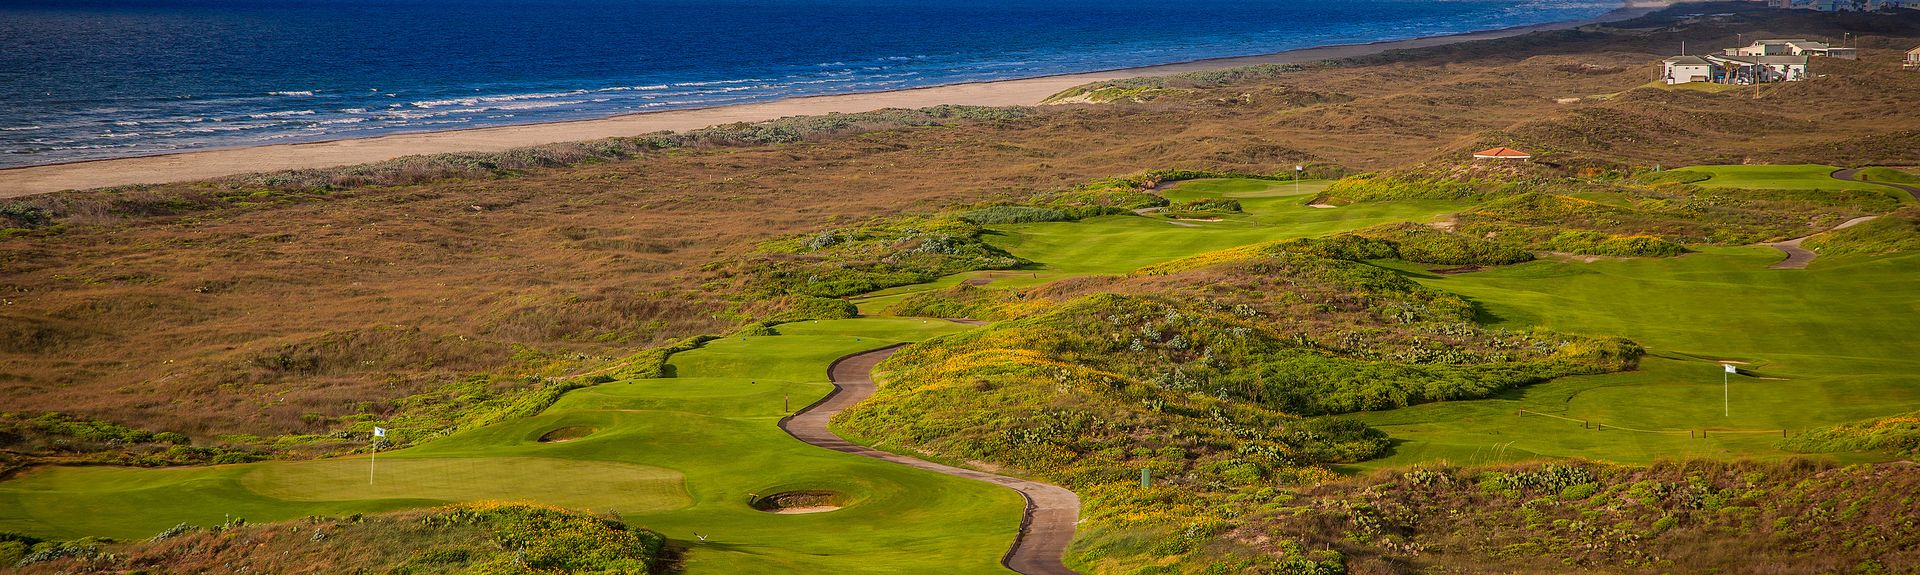 Palmilla Beach Resort & Golf Club (Port Aransas, Texas, USA)